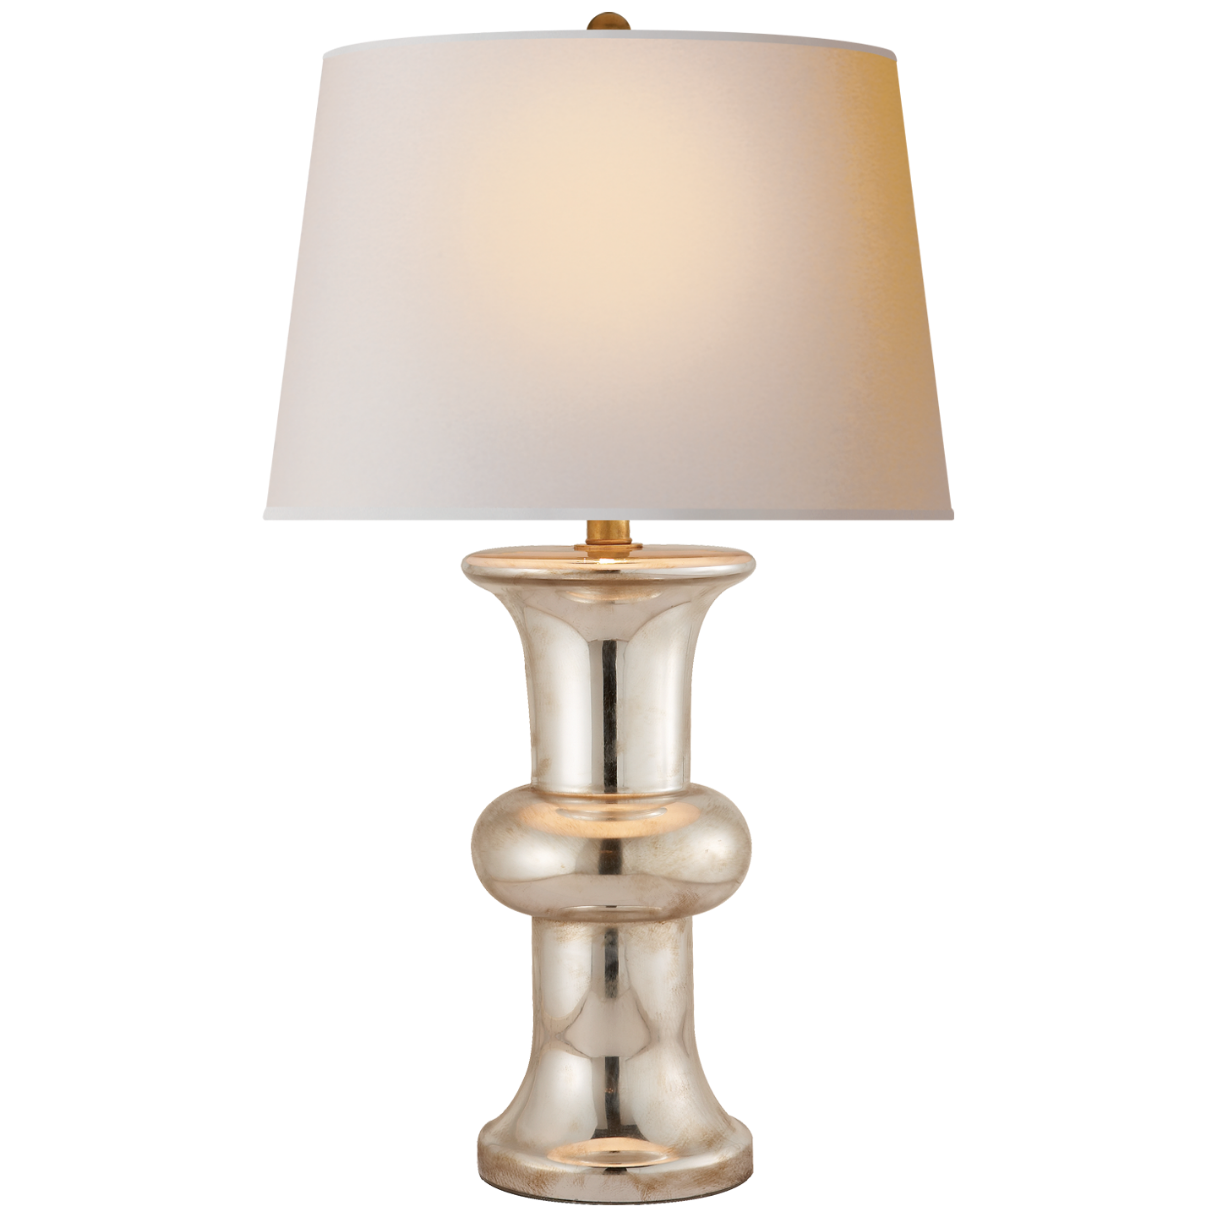 Bull Nose Cylinder Table Lamp in Mercury Glass